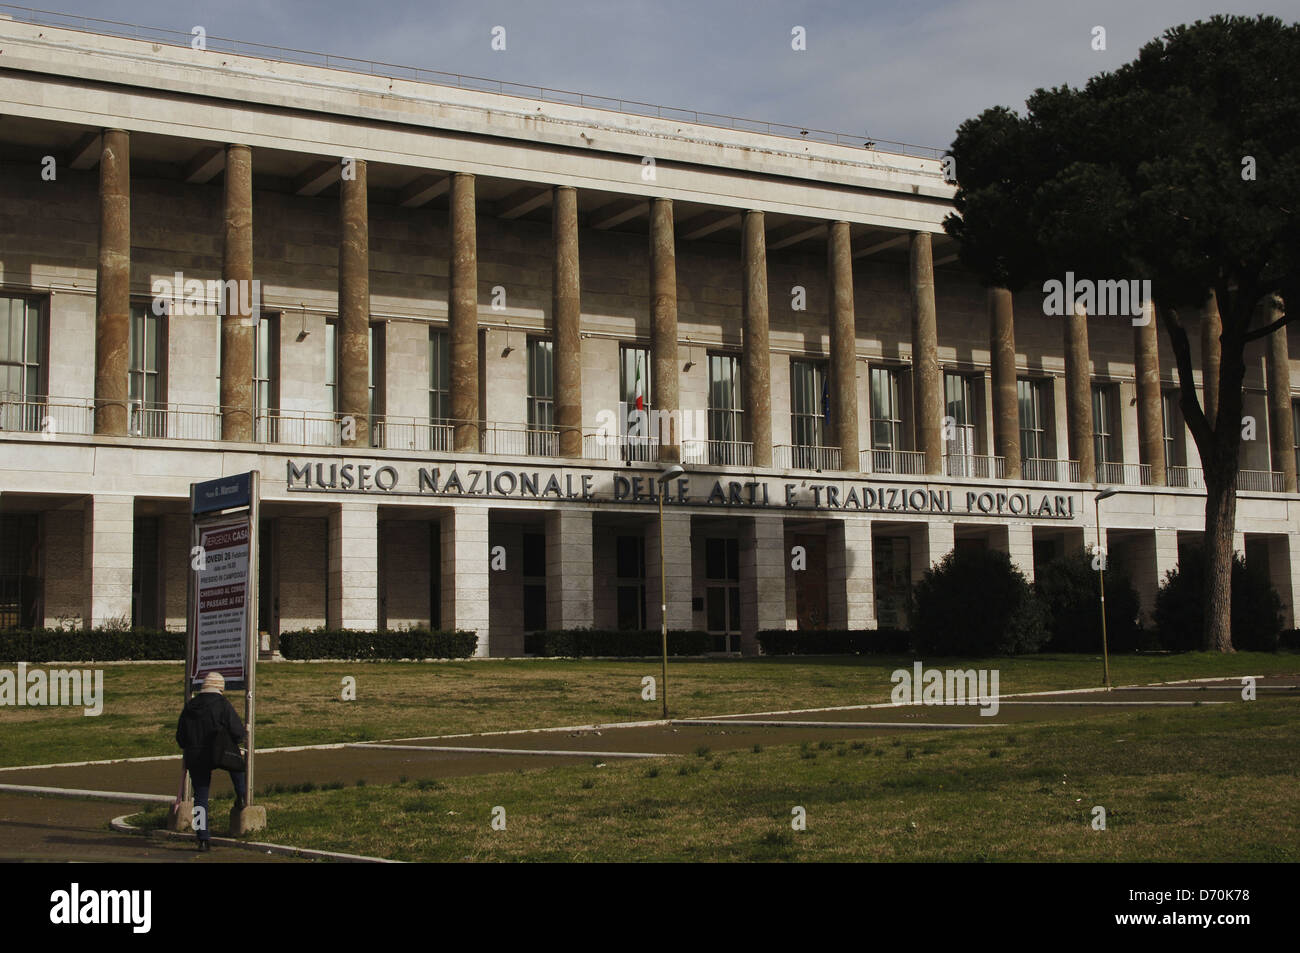 Italy. Rome. National Museum of Popular Arts and Traditions. 1938-1942. Facade. - Stock Image